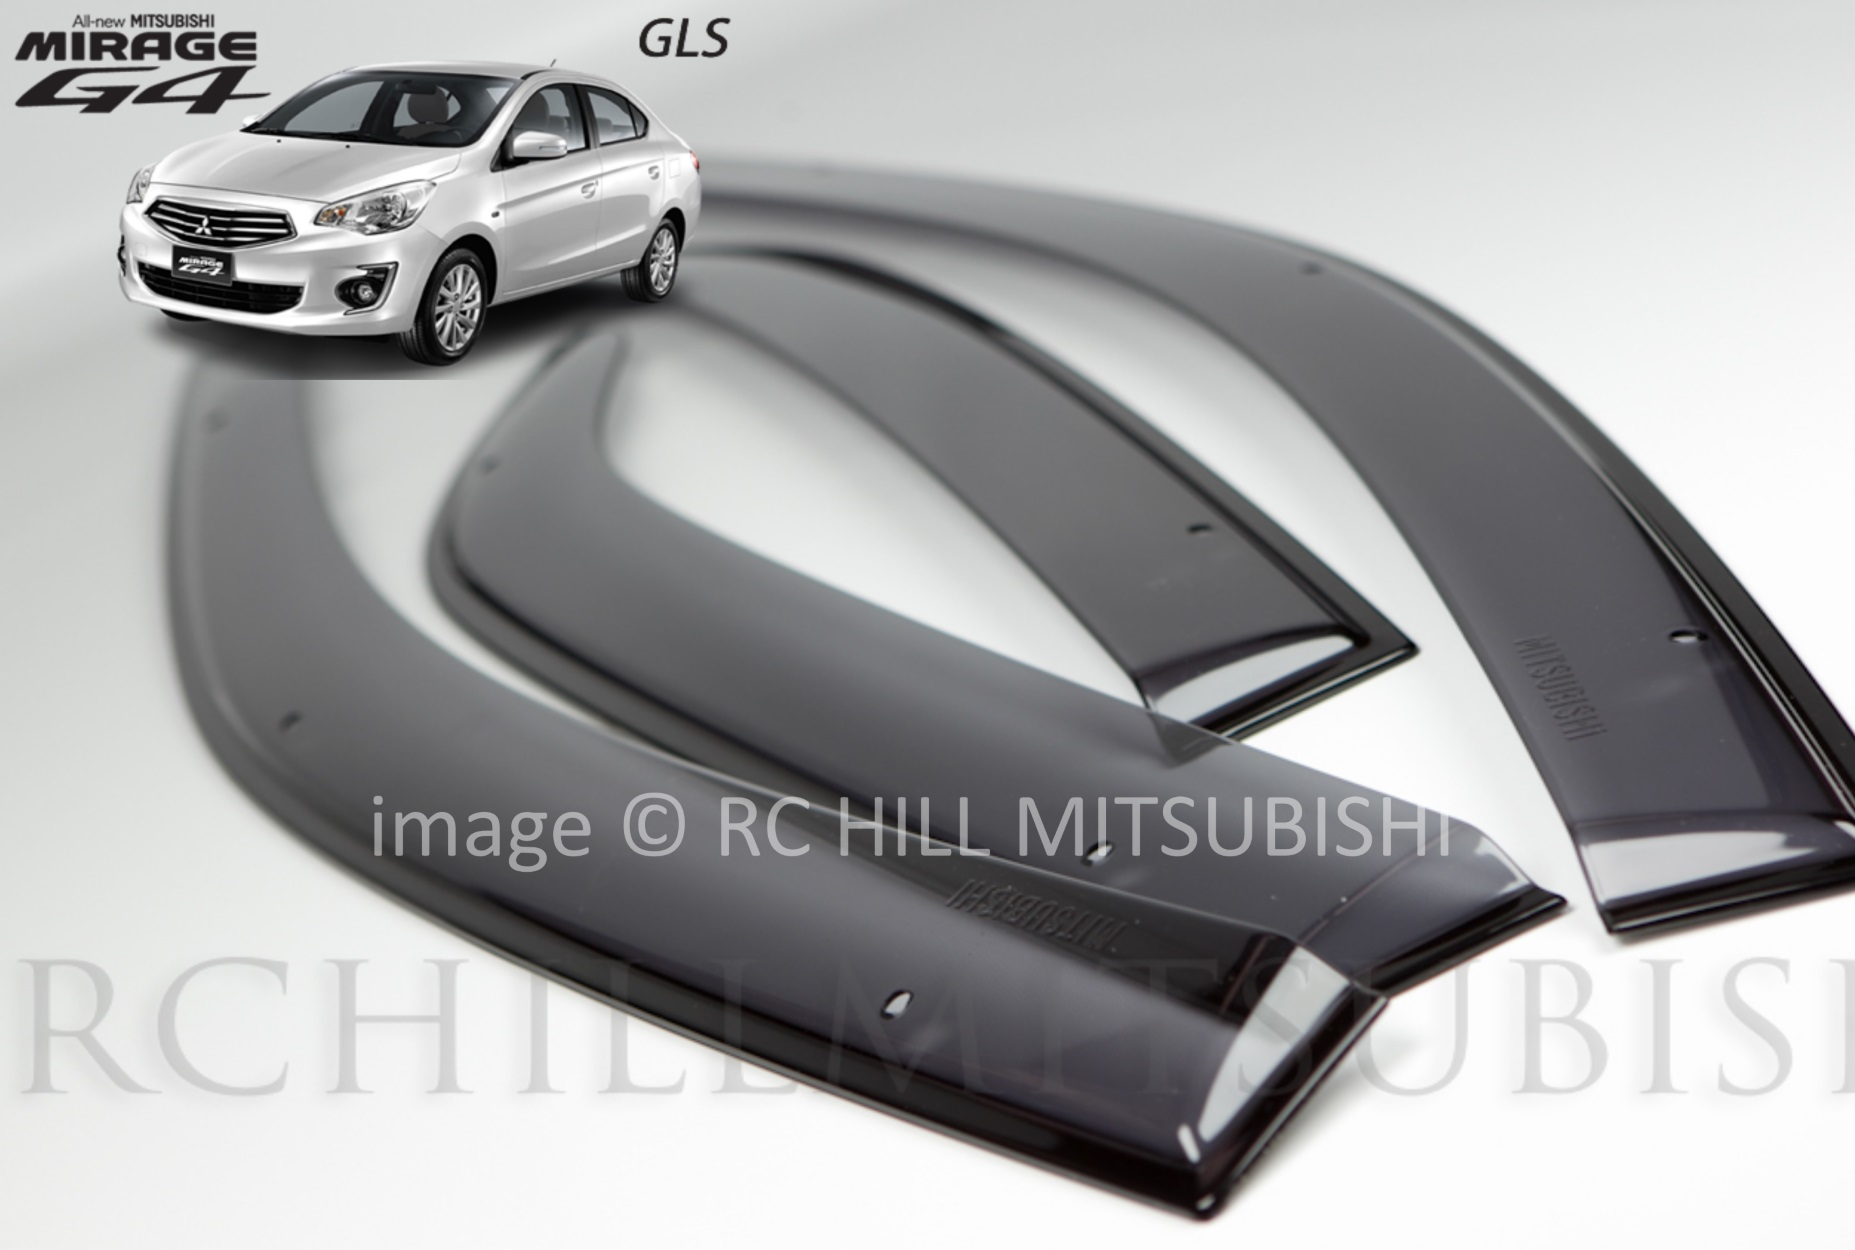 Genuine Mitsubishi Mirage G4 Sedan Side Window Deflectors - Mitsubishi (MZ330689)